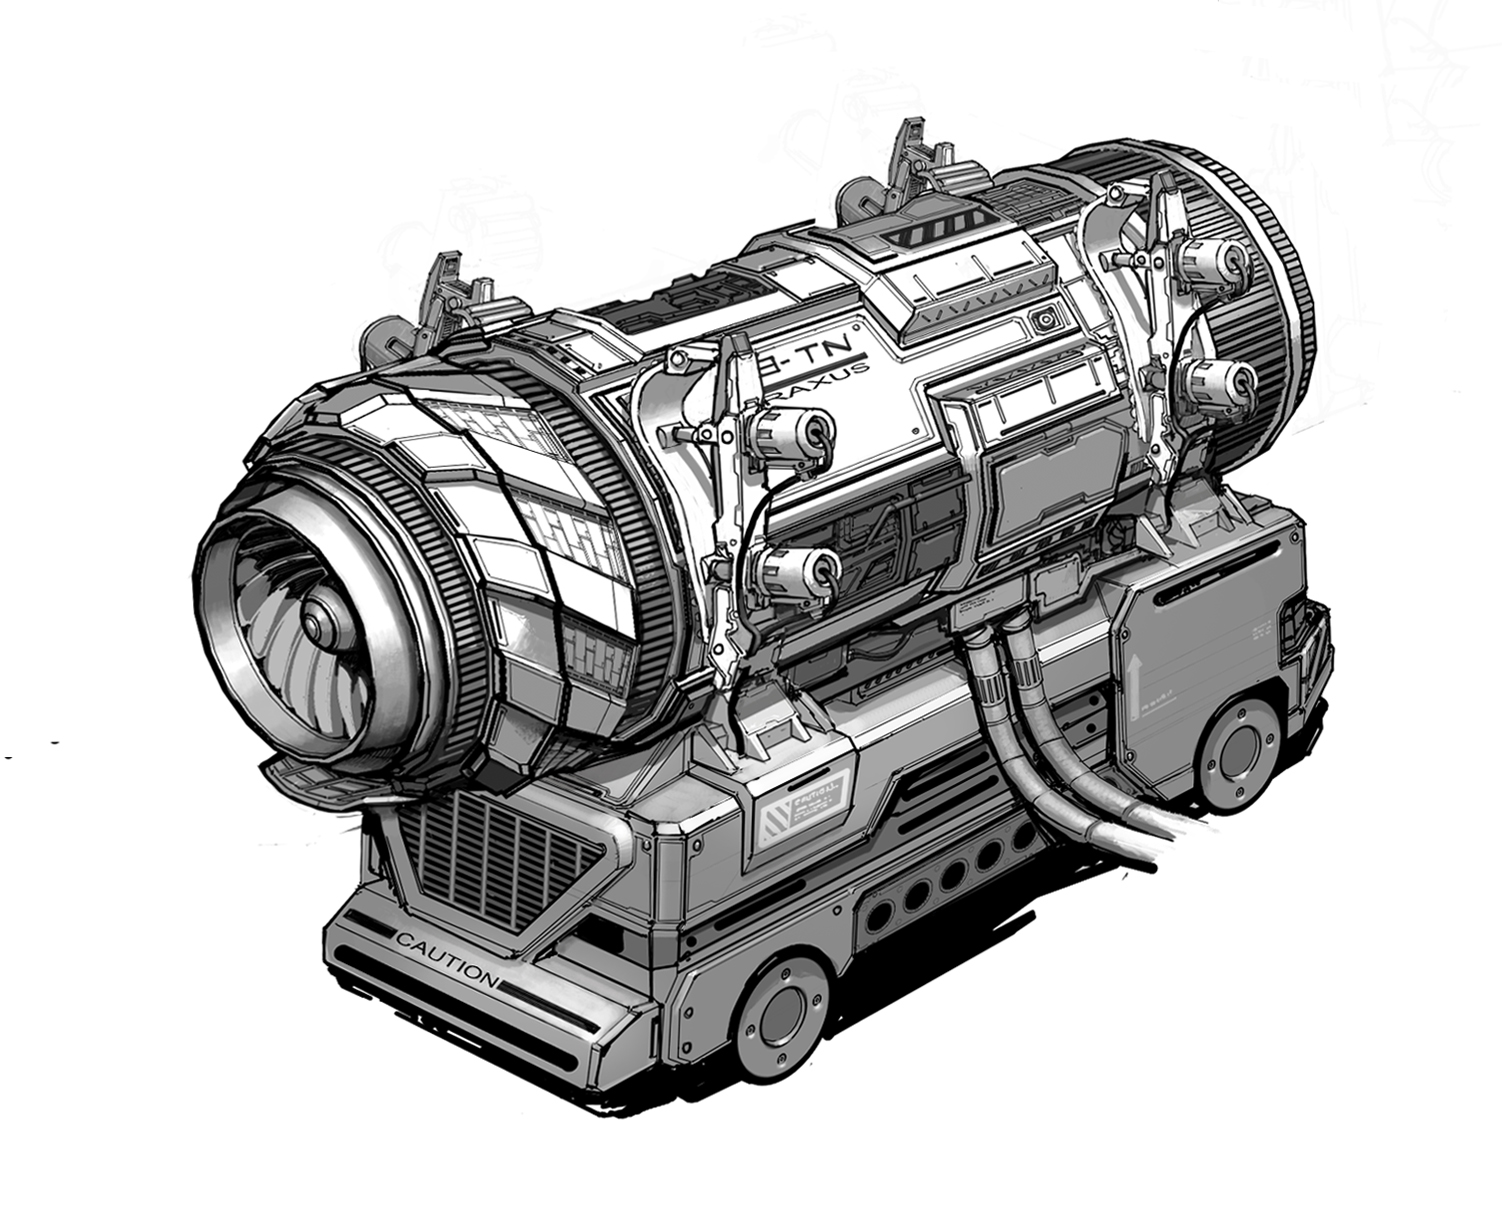 engine_revision_01.jpg